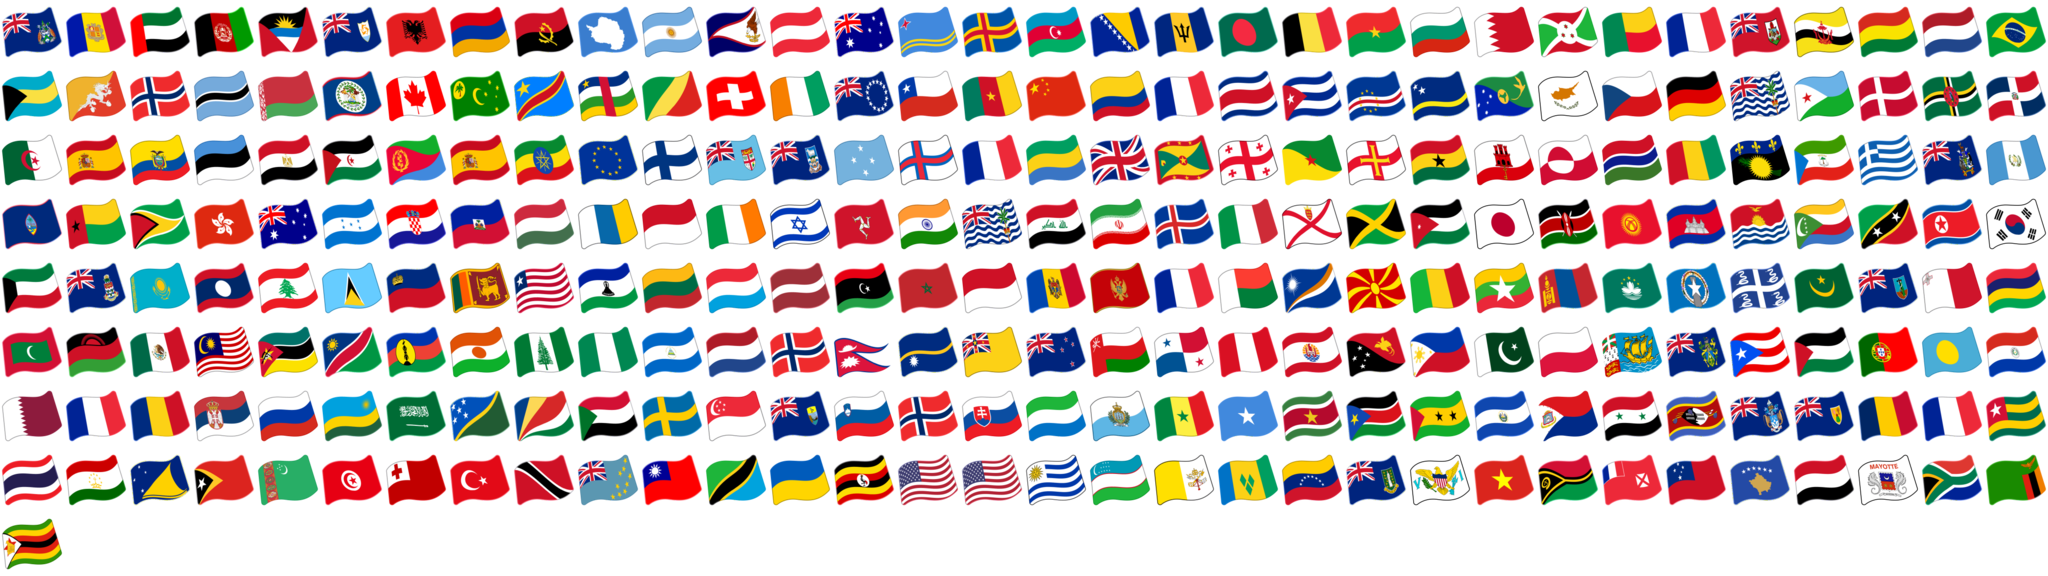 briar-android/assets/emoji_flags.png